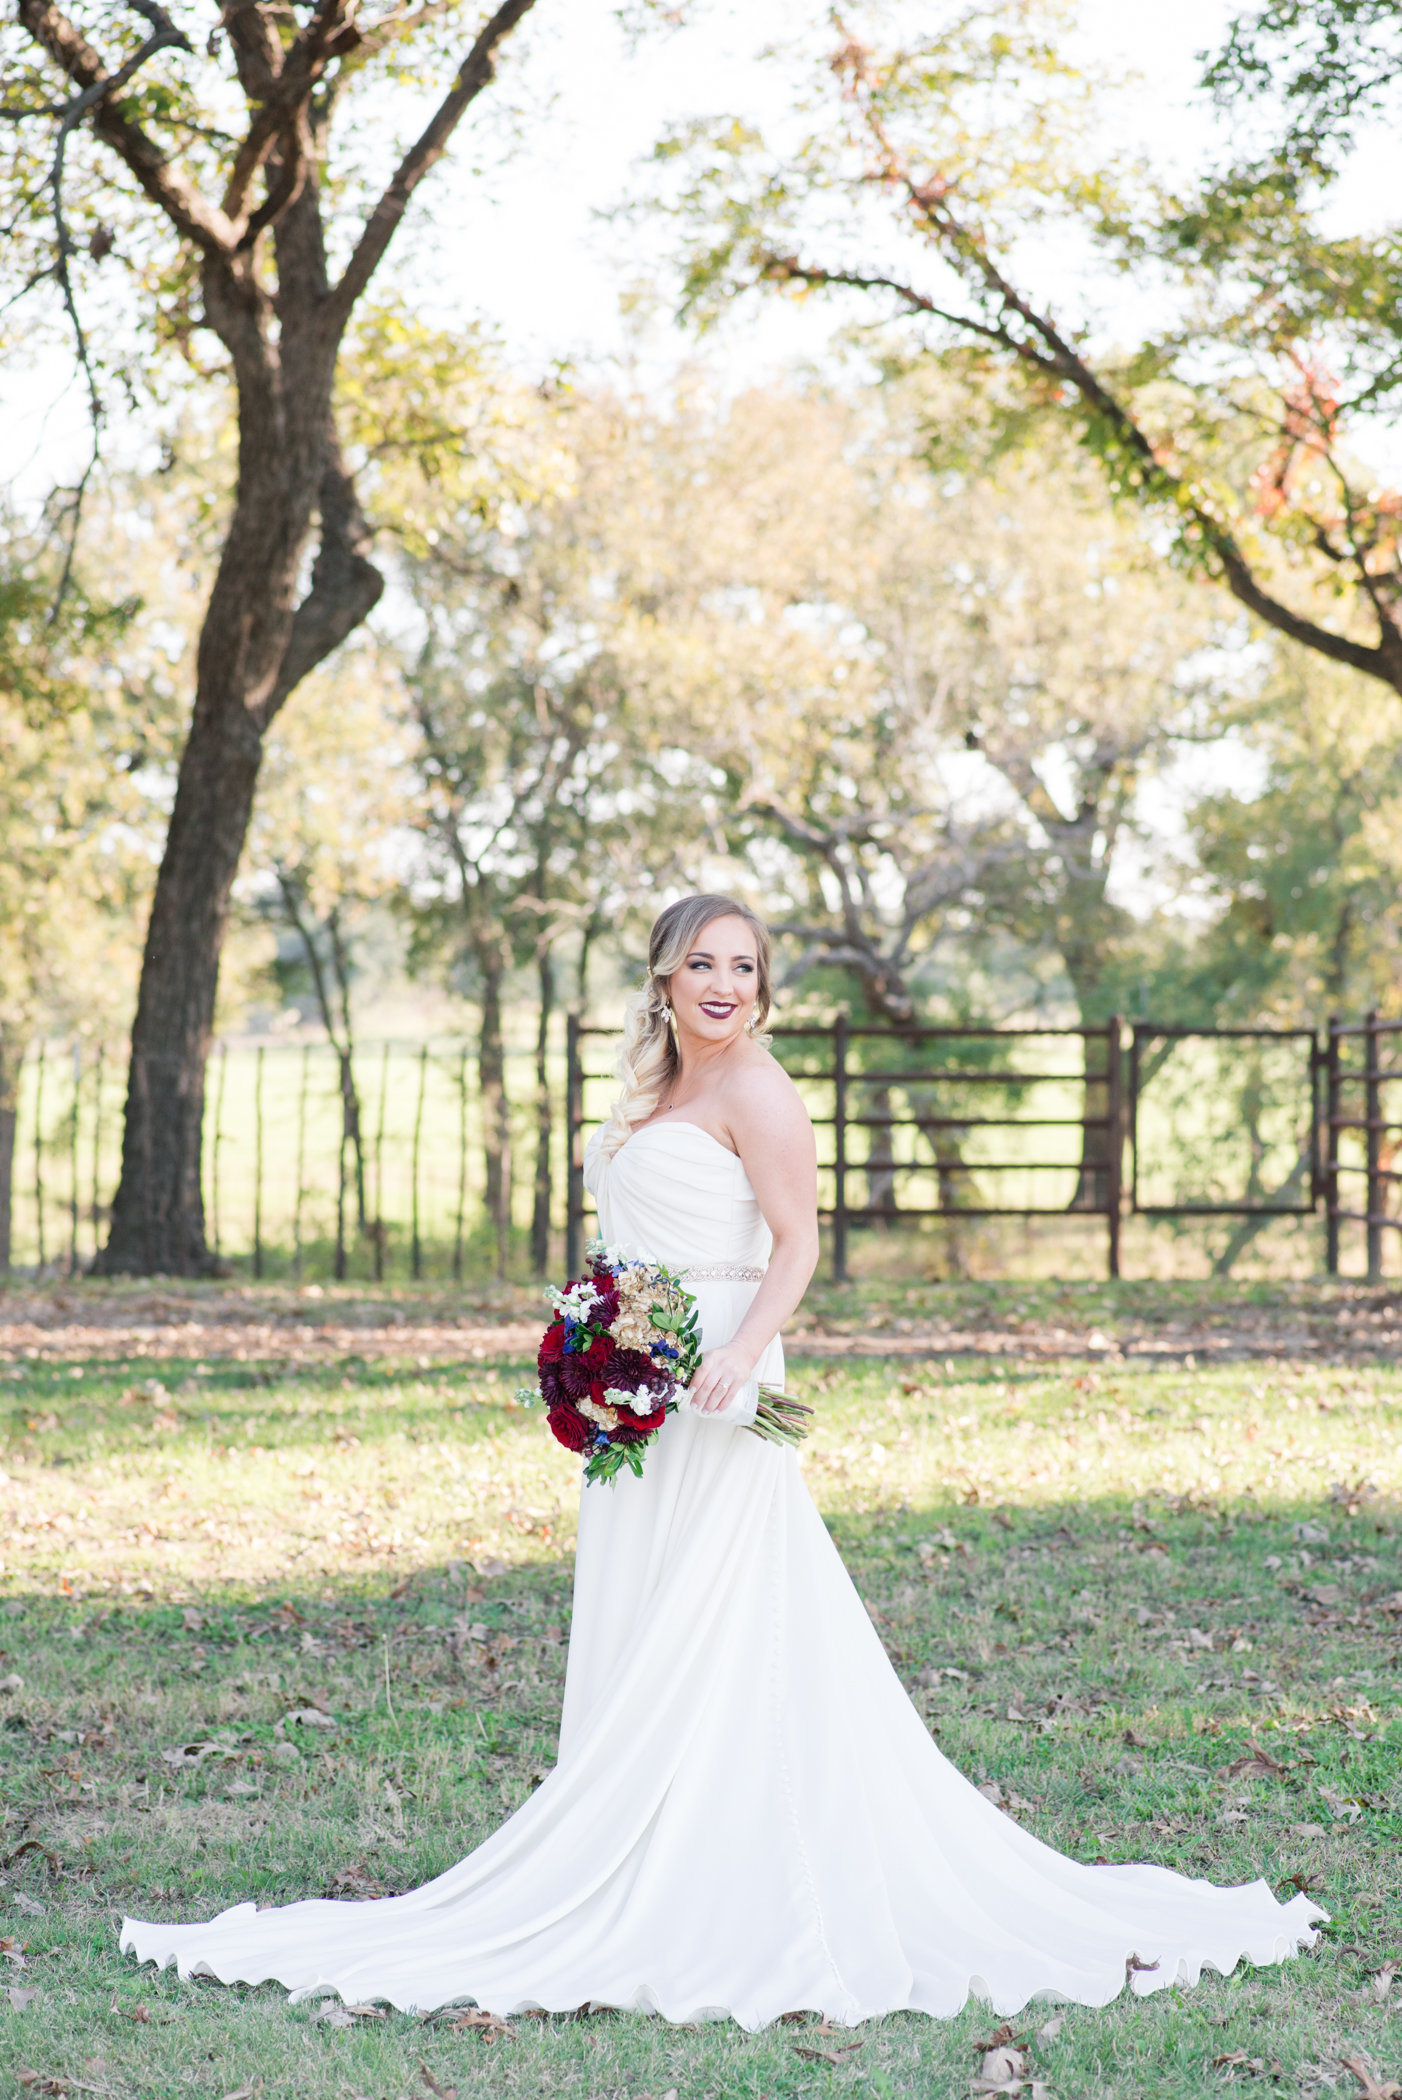 Bridal Portrait at The N at Hardway Ranch near granbury, Texas; Bride holds burgundy and gold wedding bouquet